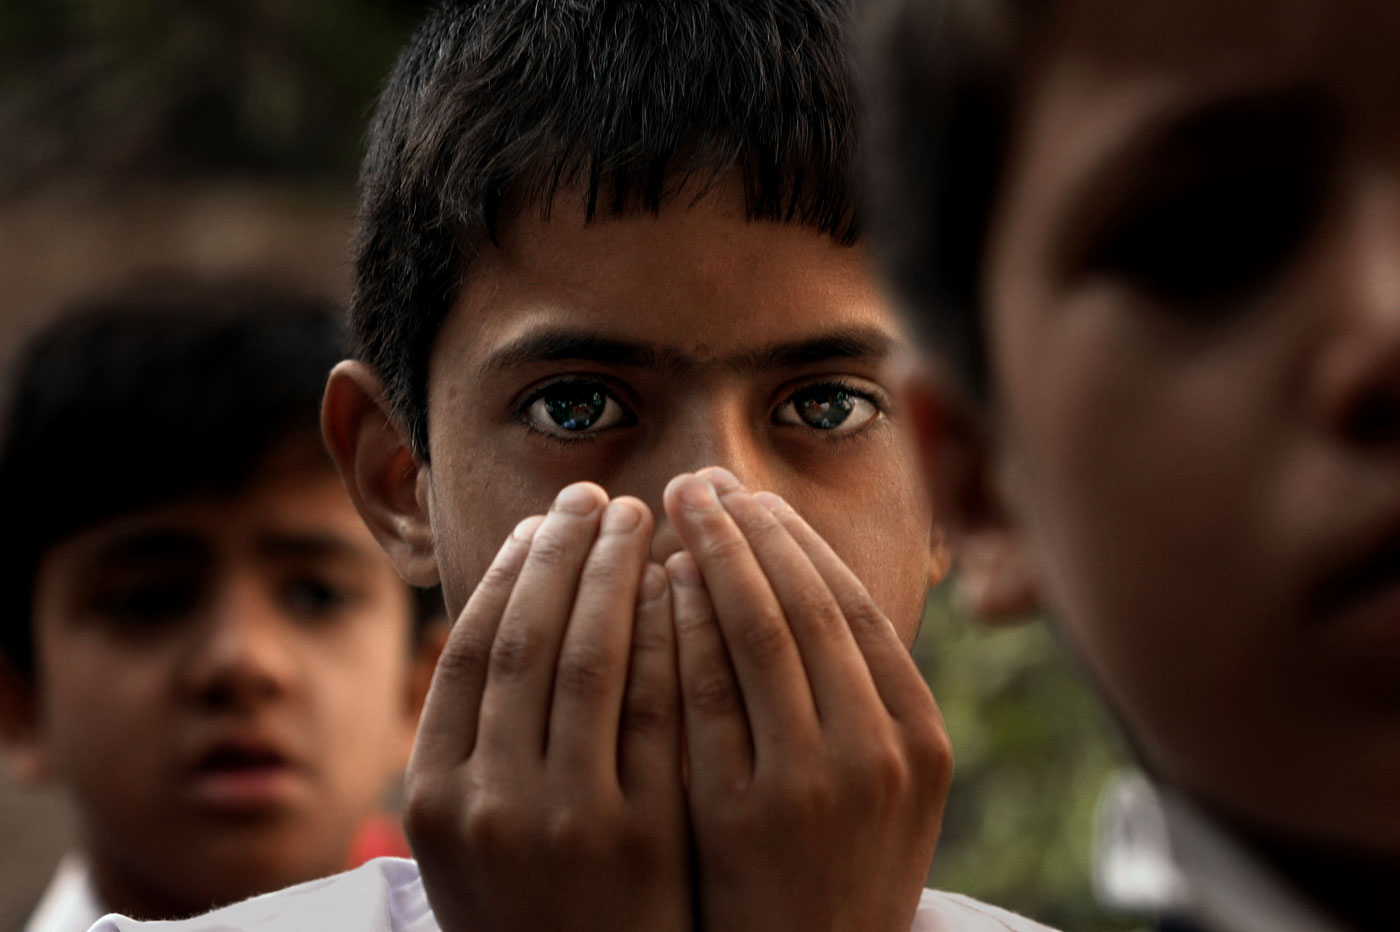 Zahoor Ahmad looks up during morning prayers before heading into school.